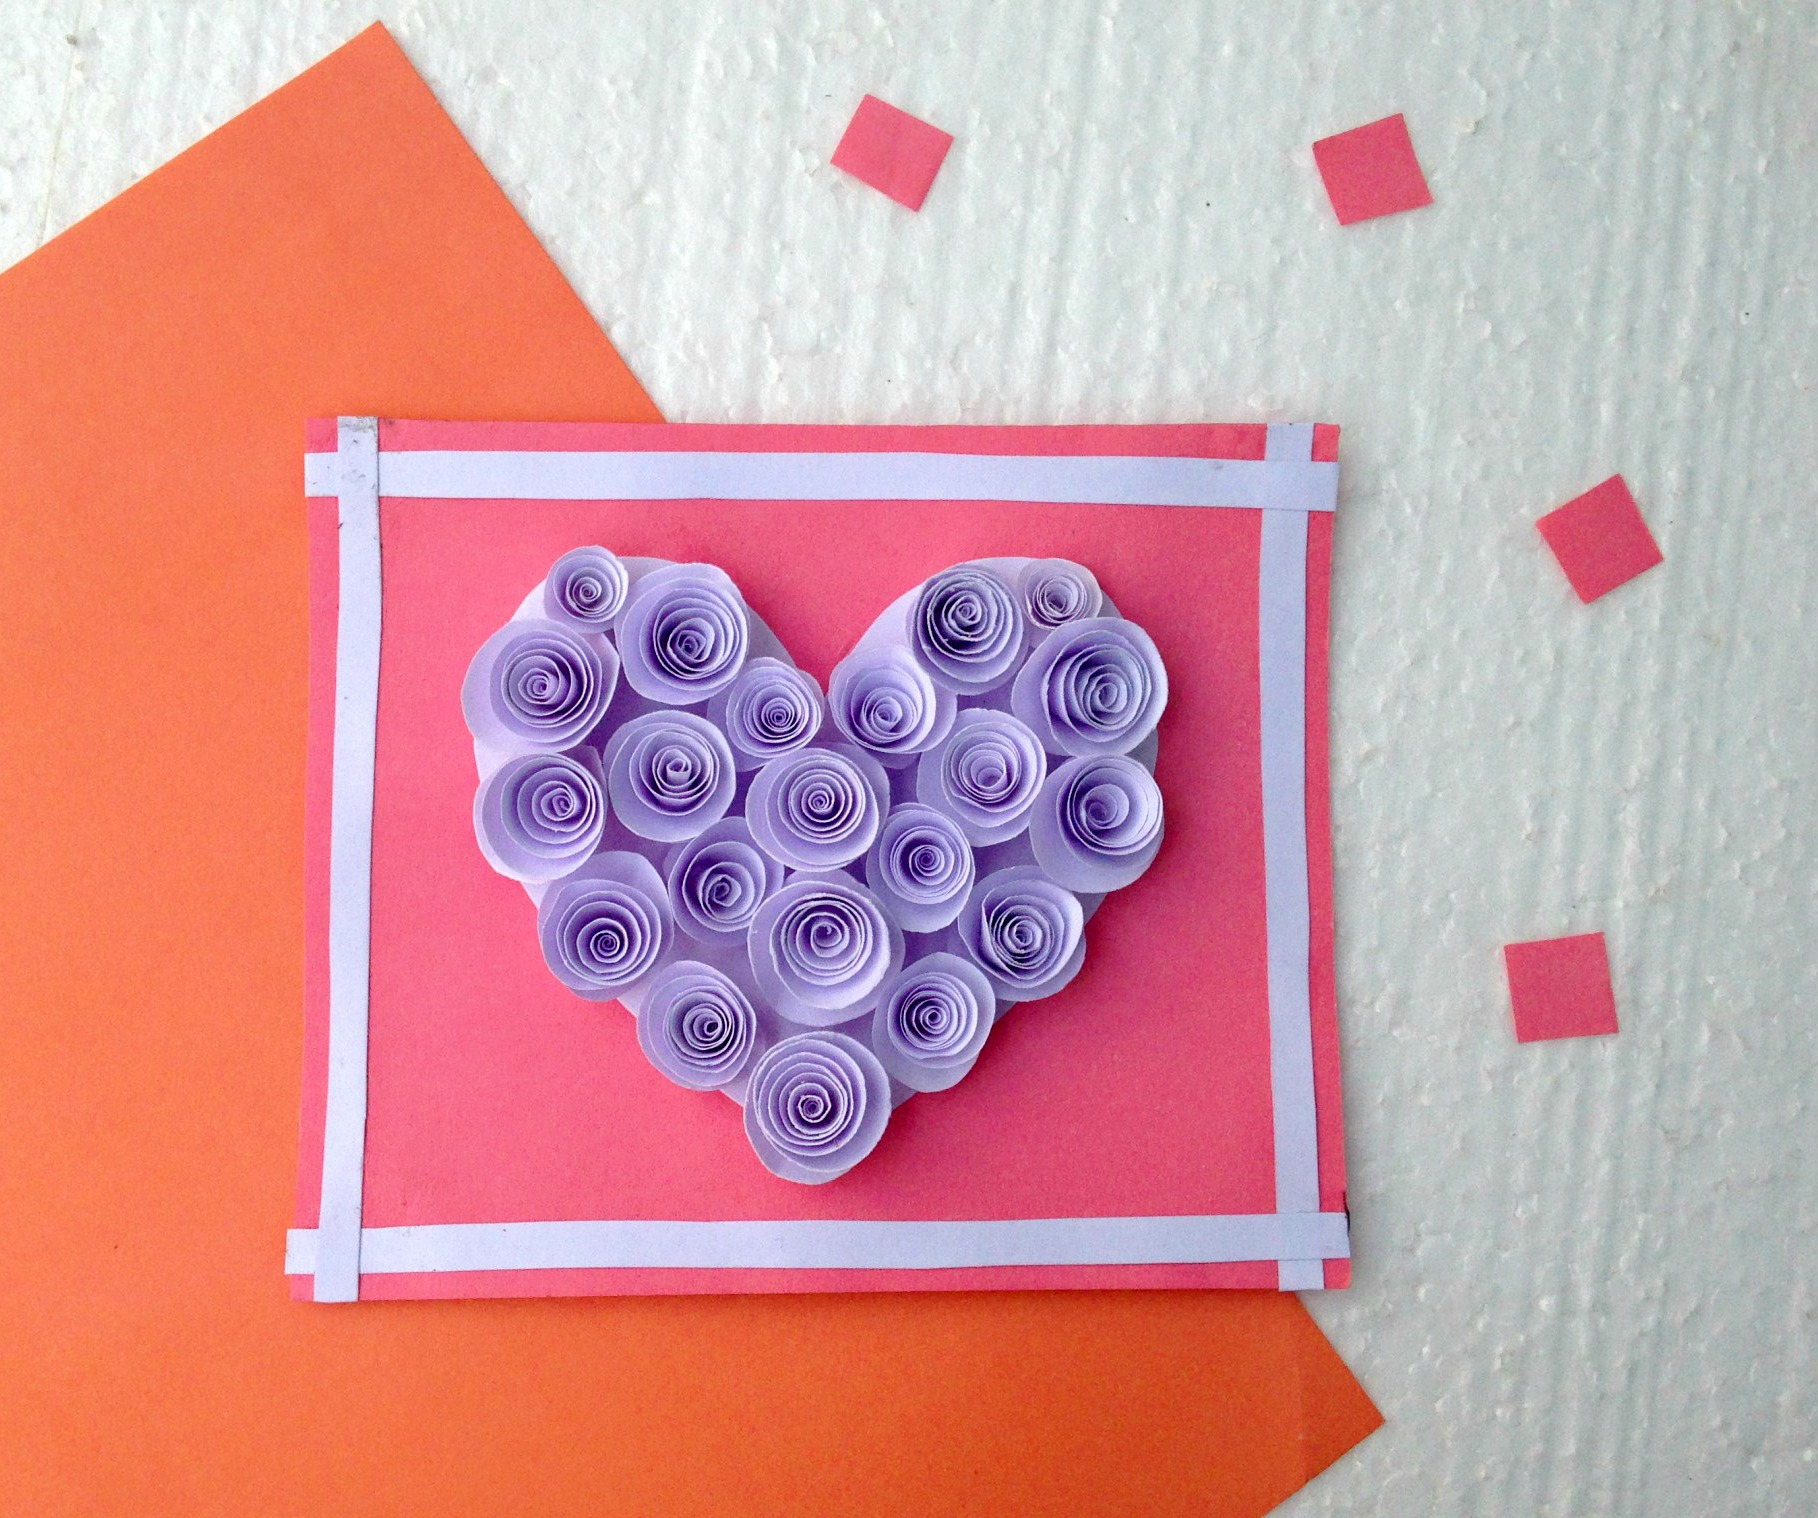 Valentines-day-card-diy-ideas-kids-paper-craft